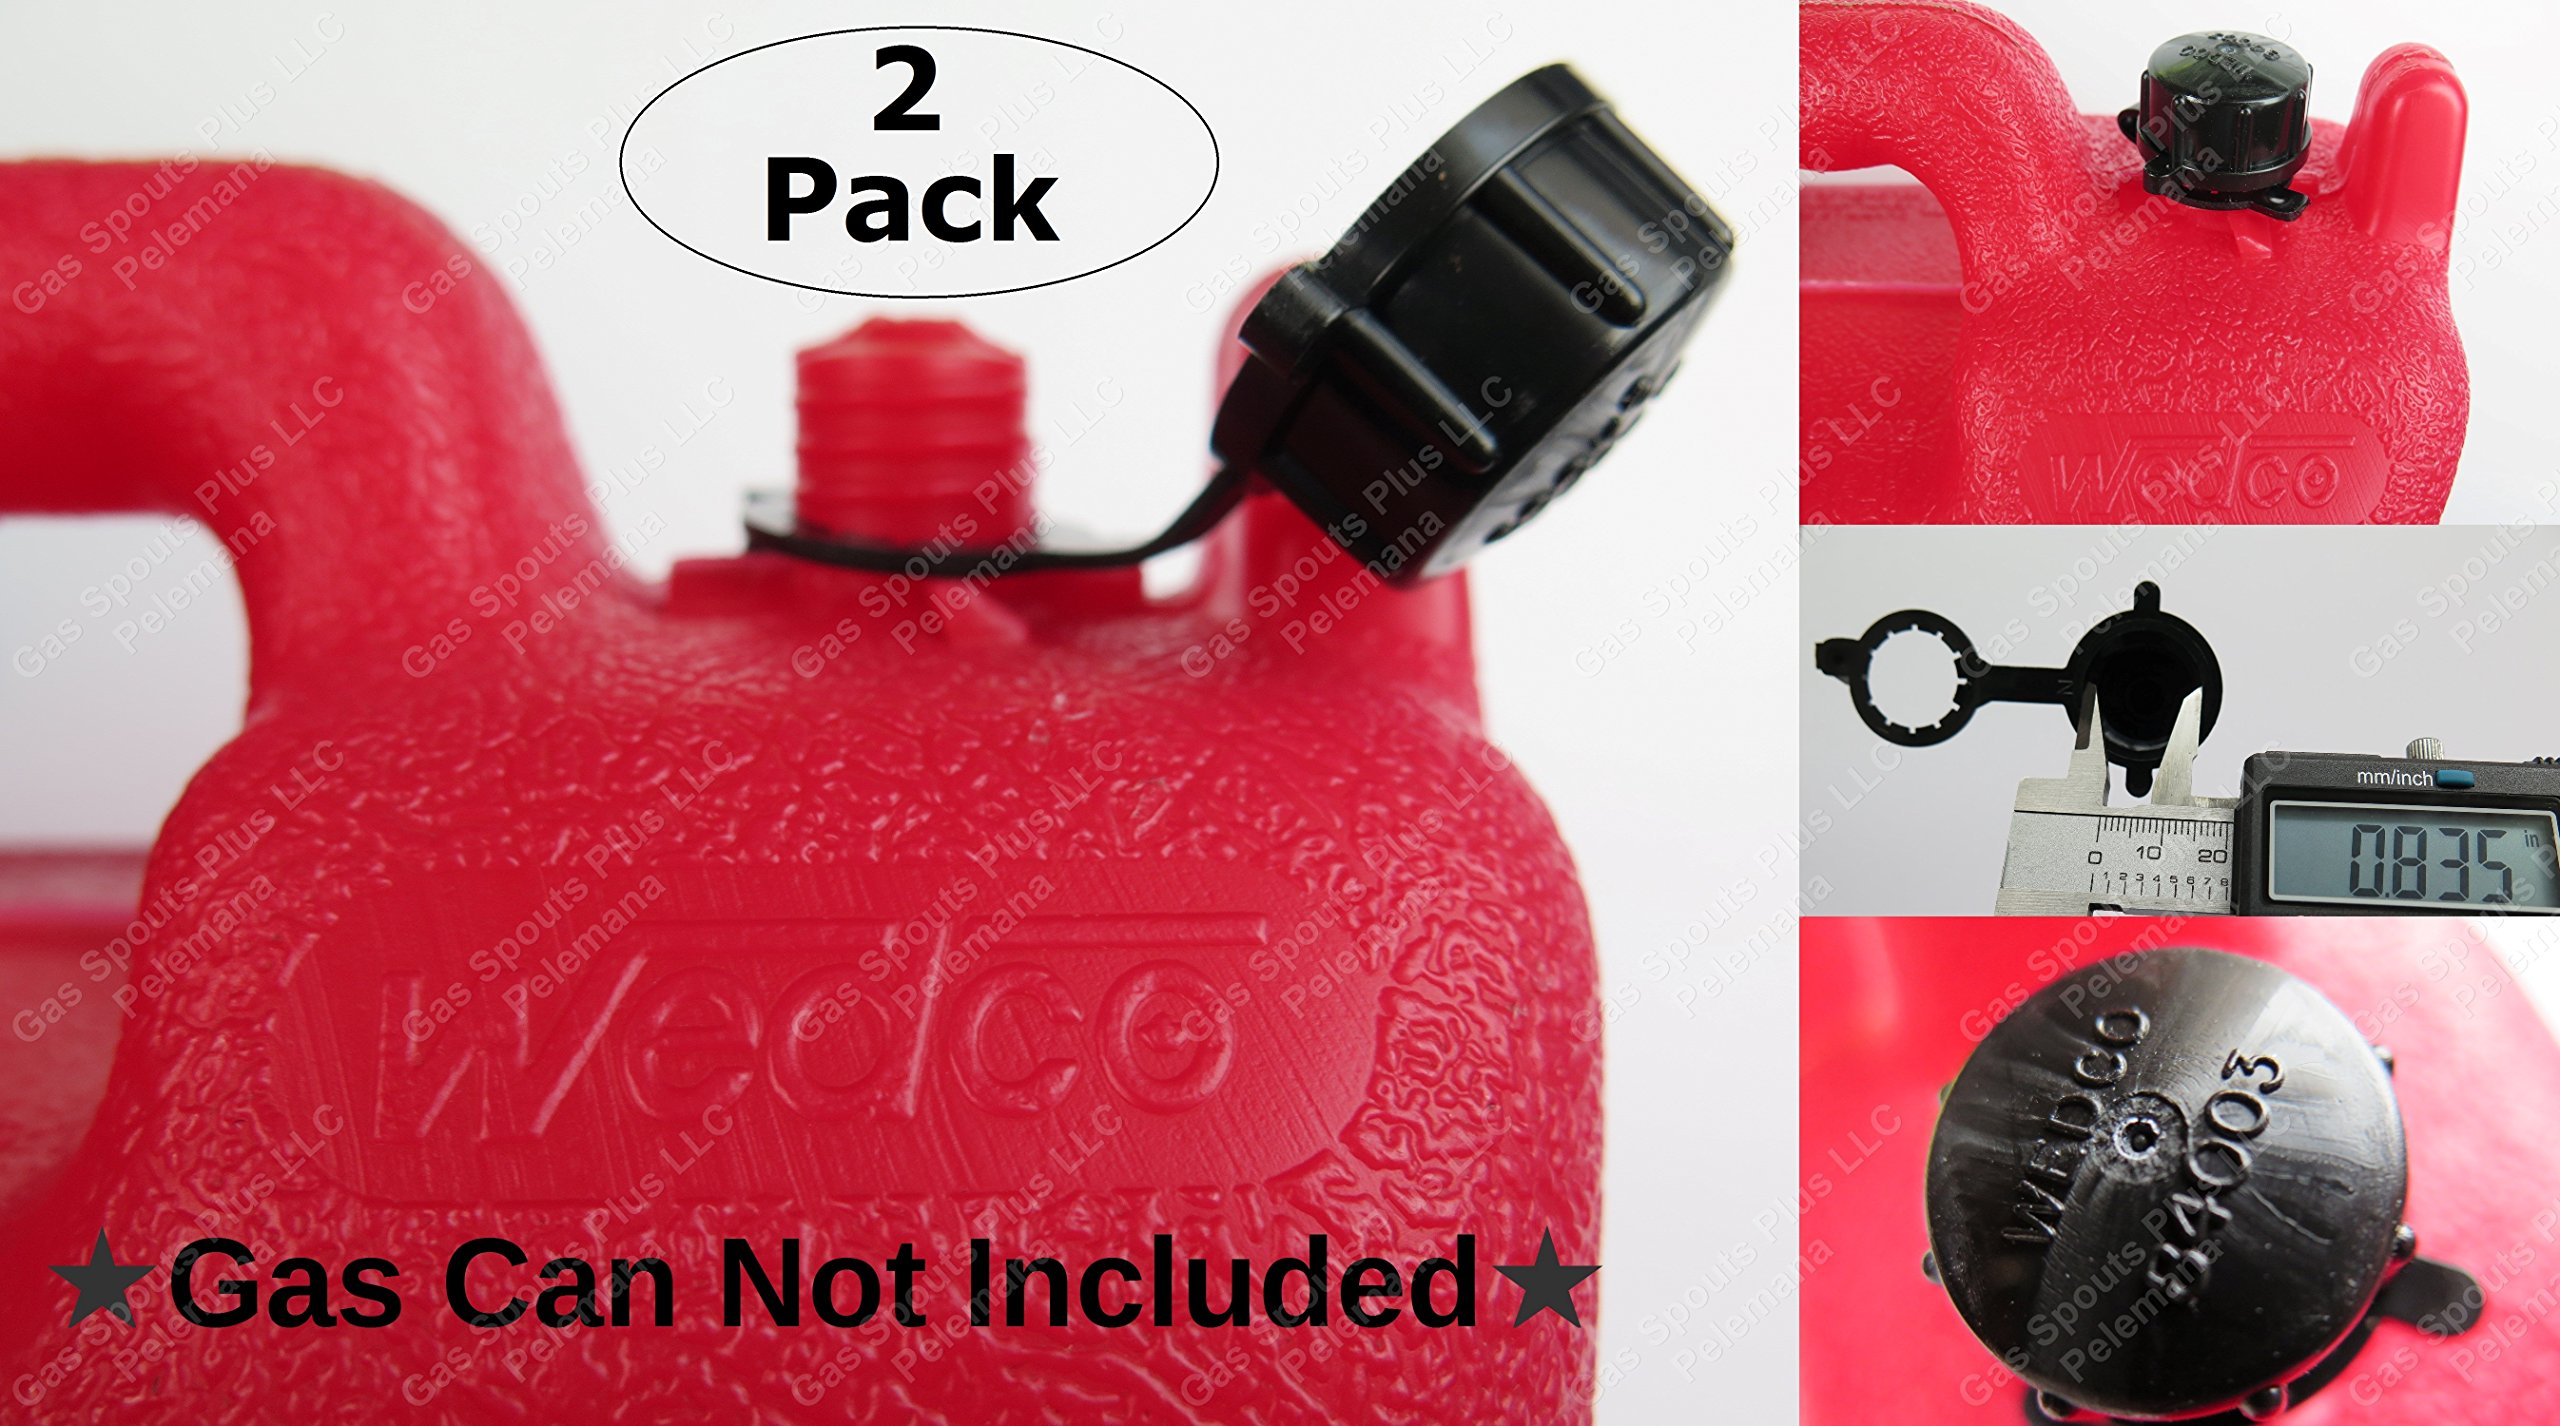 2-Pack New Wedco Authentic Genuine REAR VENT SCREW CAPS #84003 with tether to prevent loss Wedco Essence Briggs & Stratton GAS FUEL DIESEL KEROSENE CAN PART ORIGINAL REPLACEMENTS